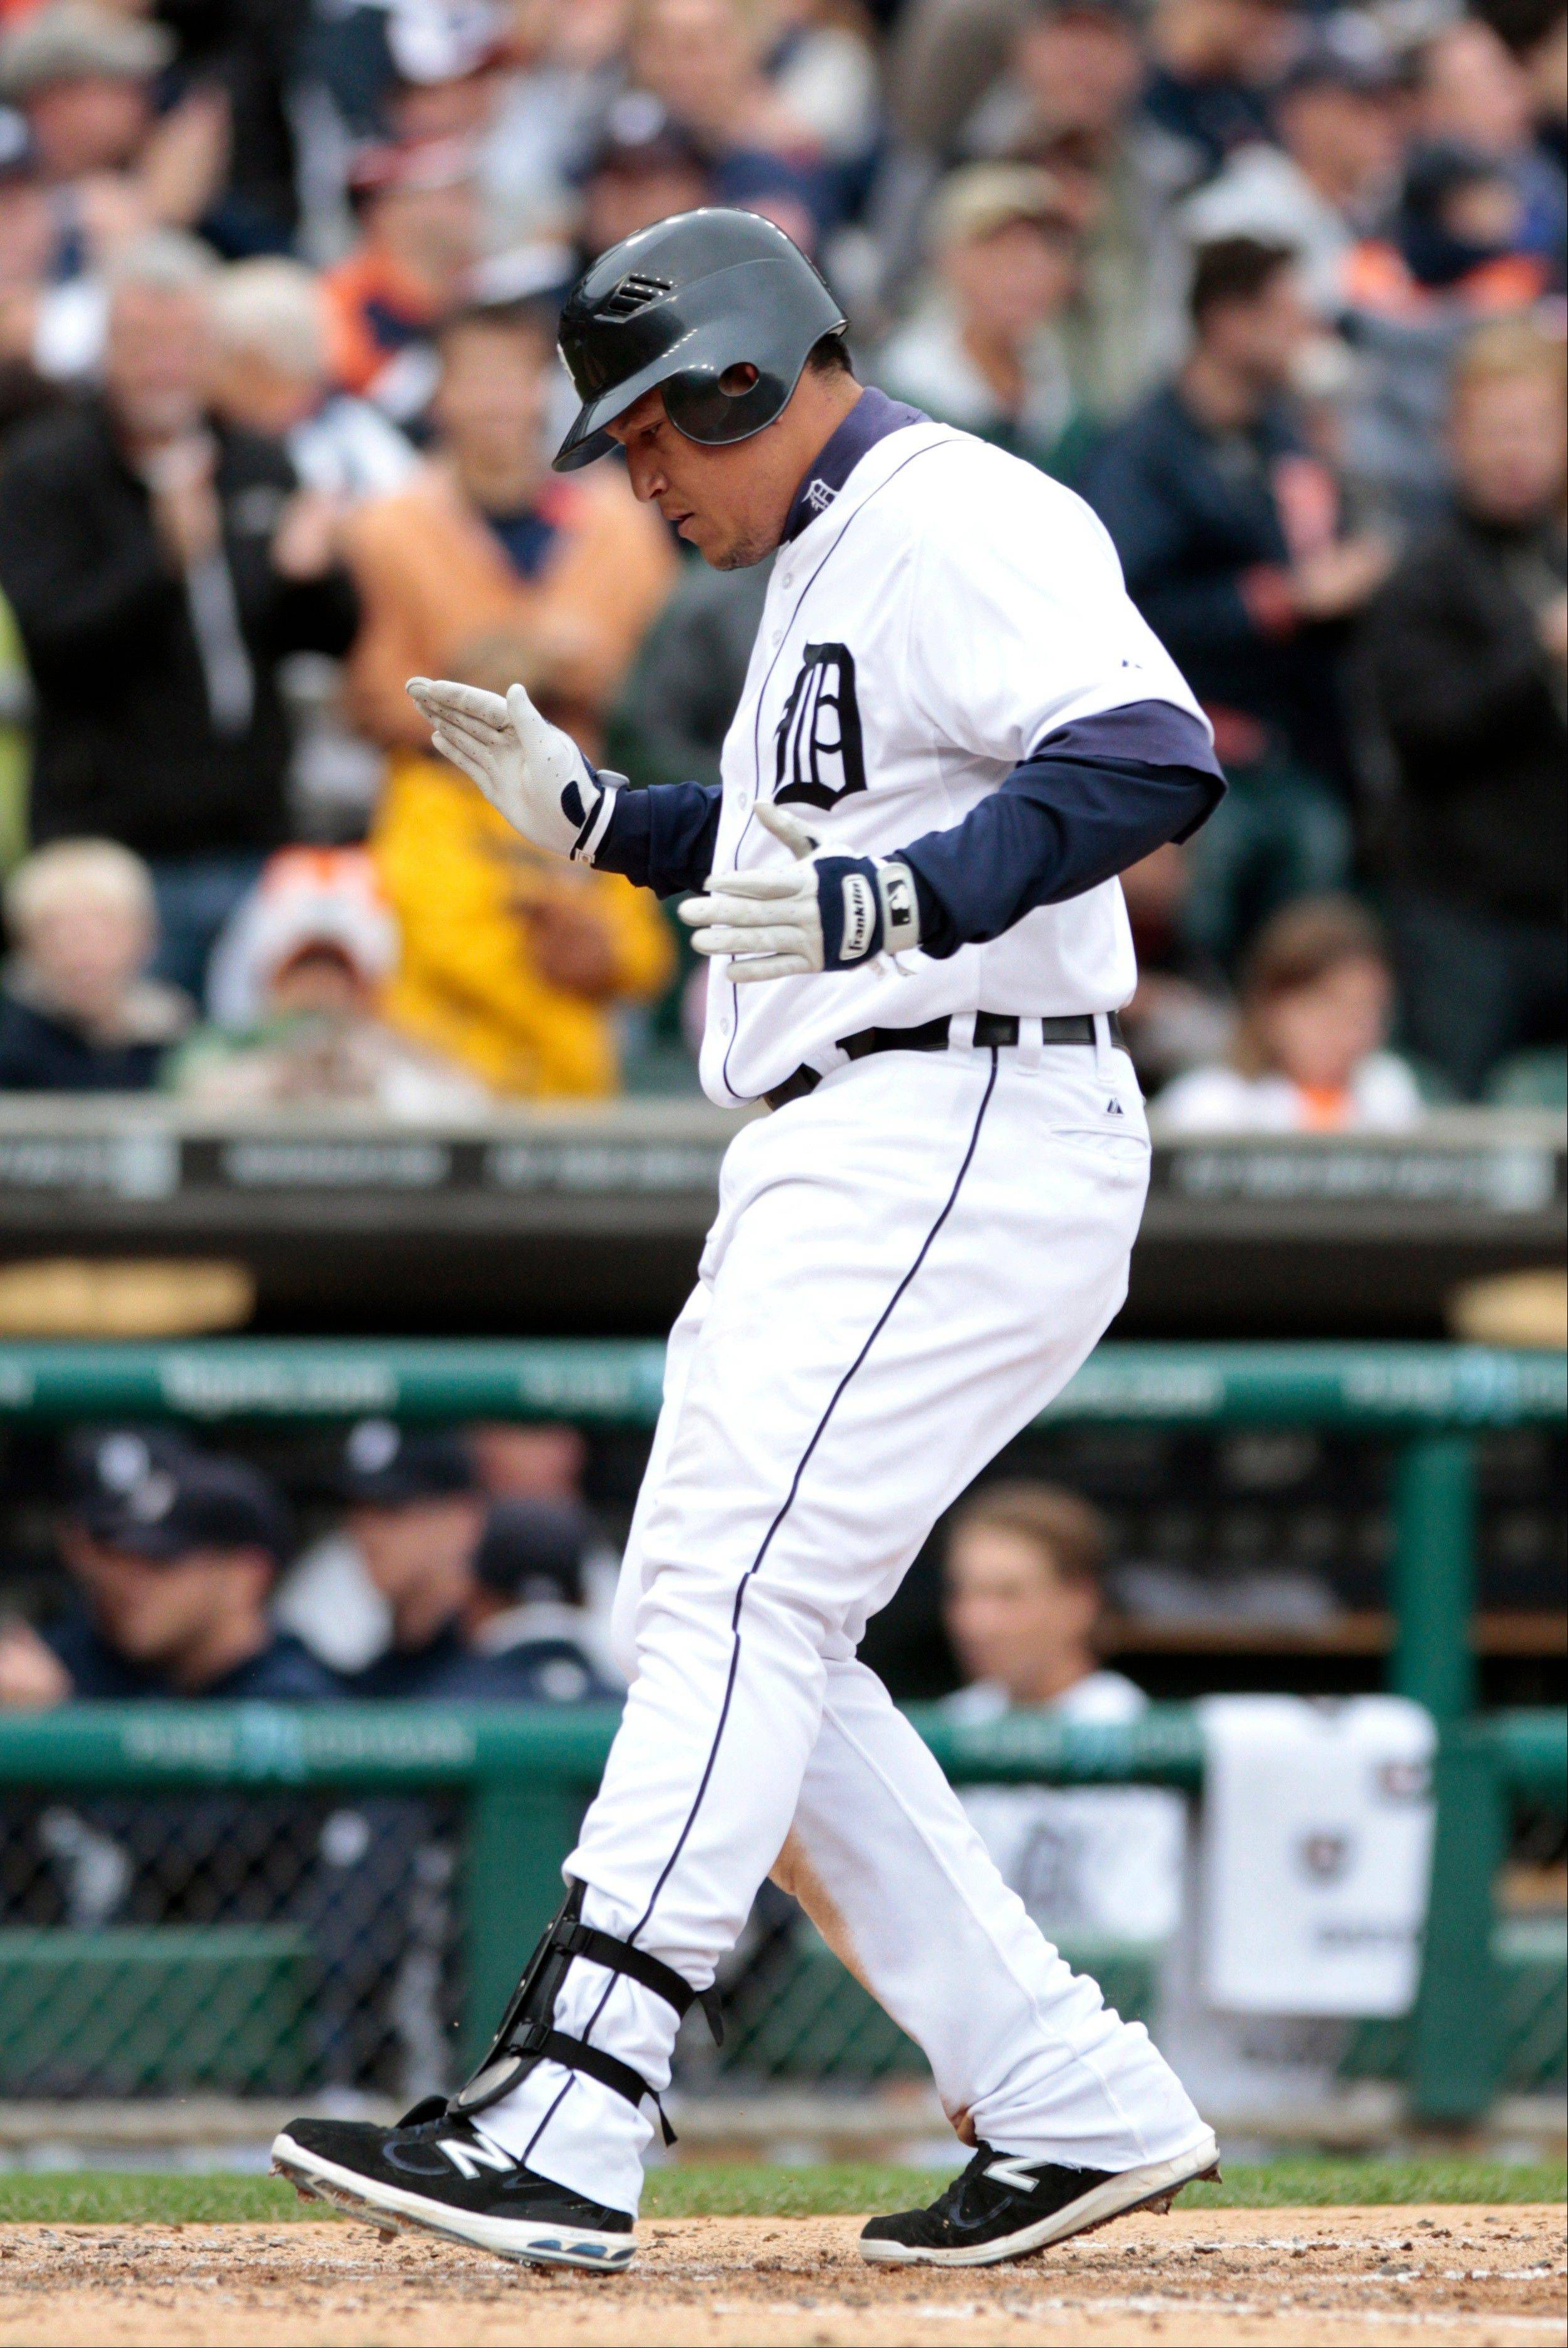 The Tigers' Miguel Cabrera crosses home plate after hitting a solo home run against the Minnesota Twins on Saturday in Detroit. After Thursday's 5-4 victory over Kansas City, Cabrera is hitting .326 with 42 homers and 133 RBIs.